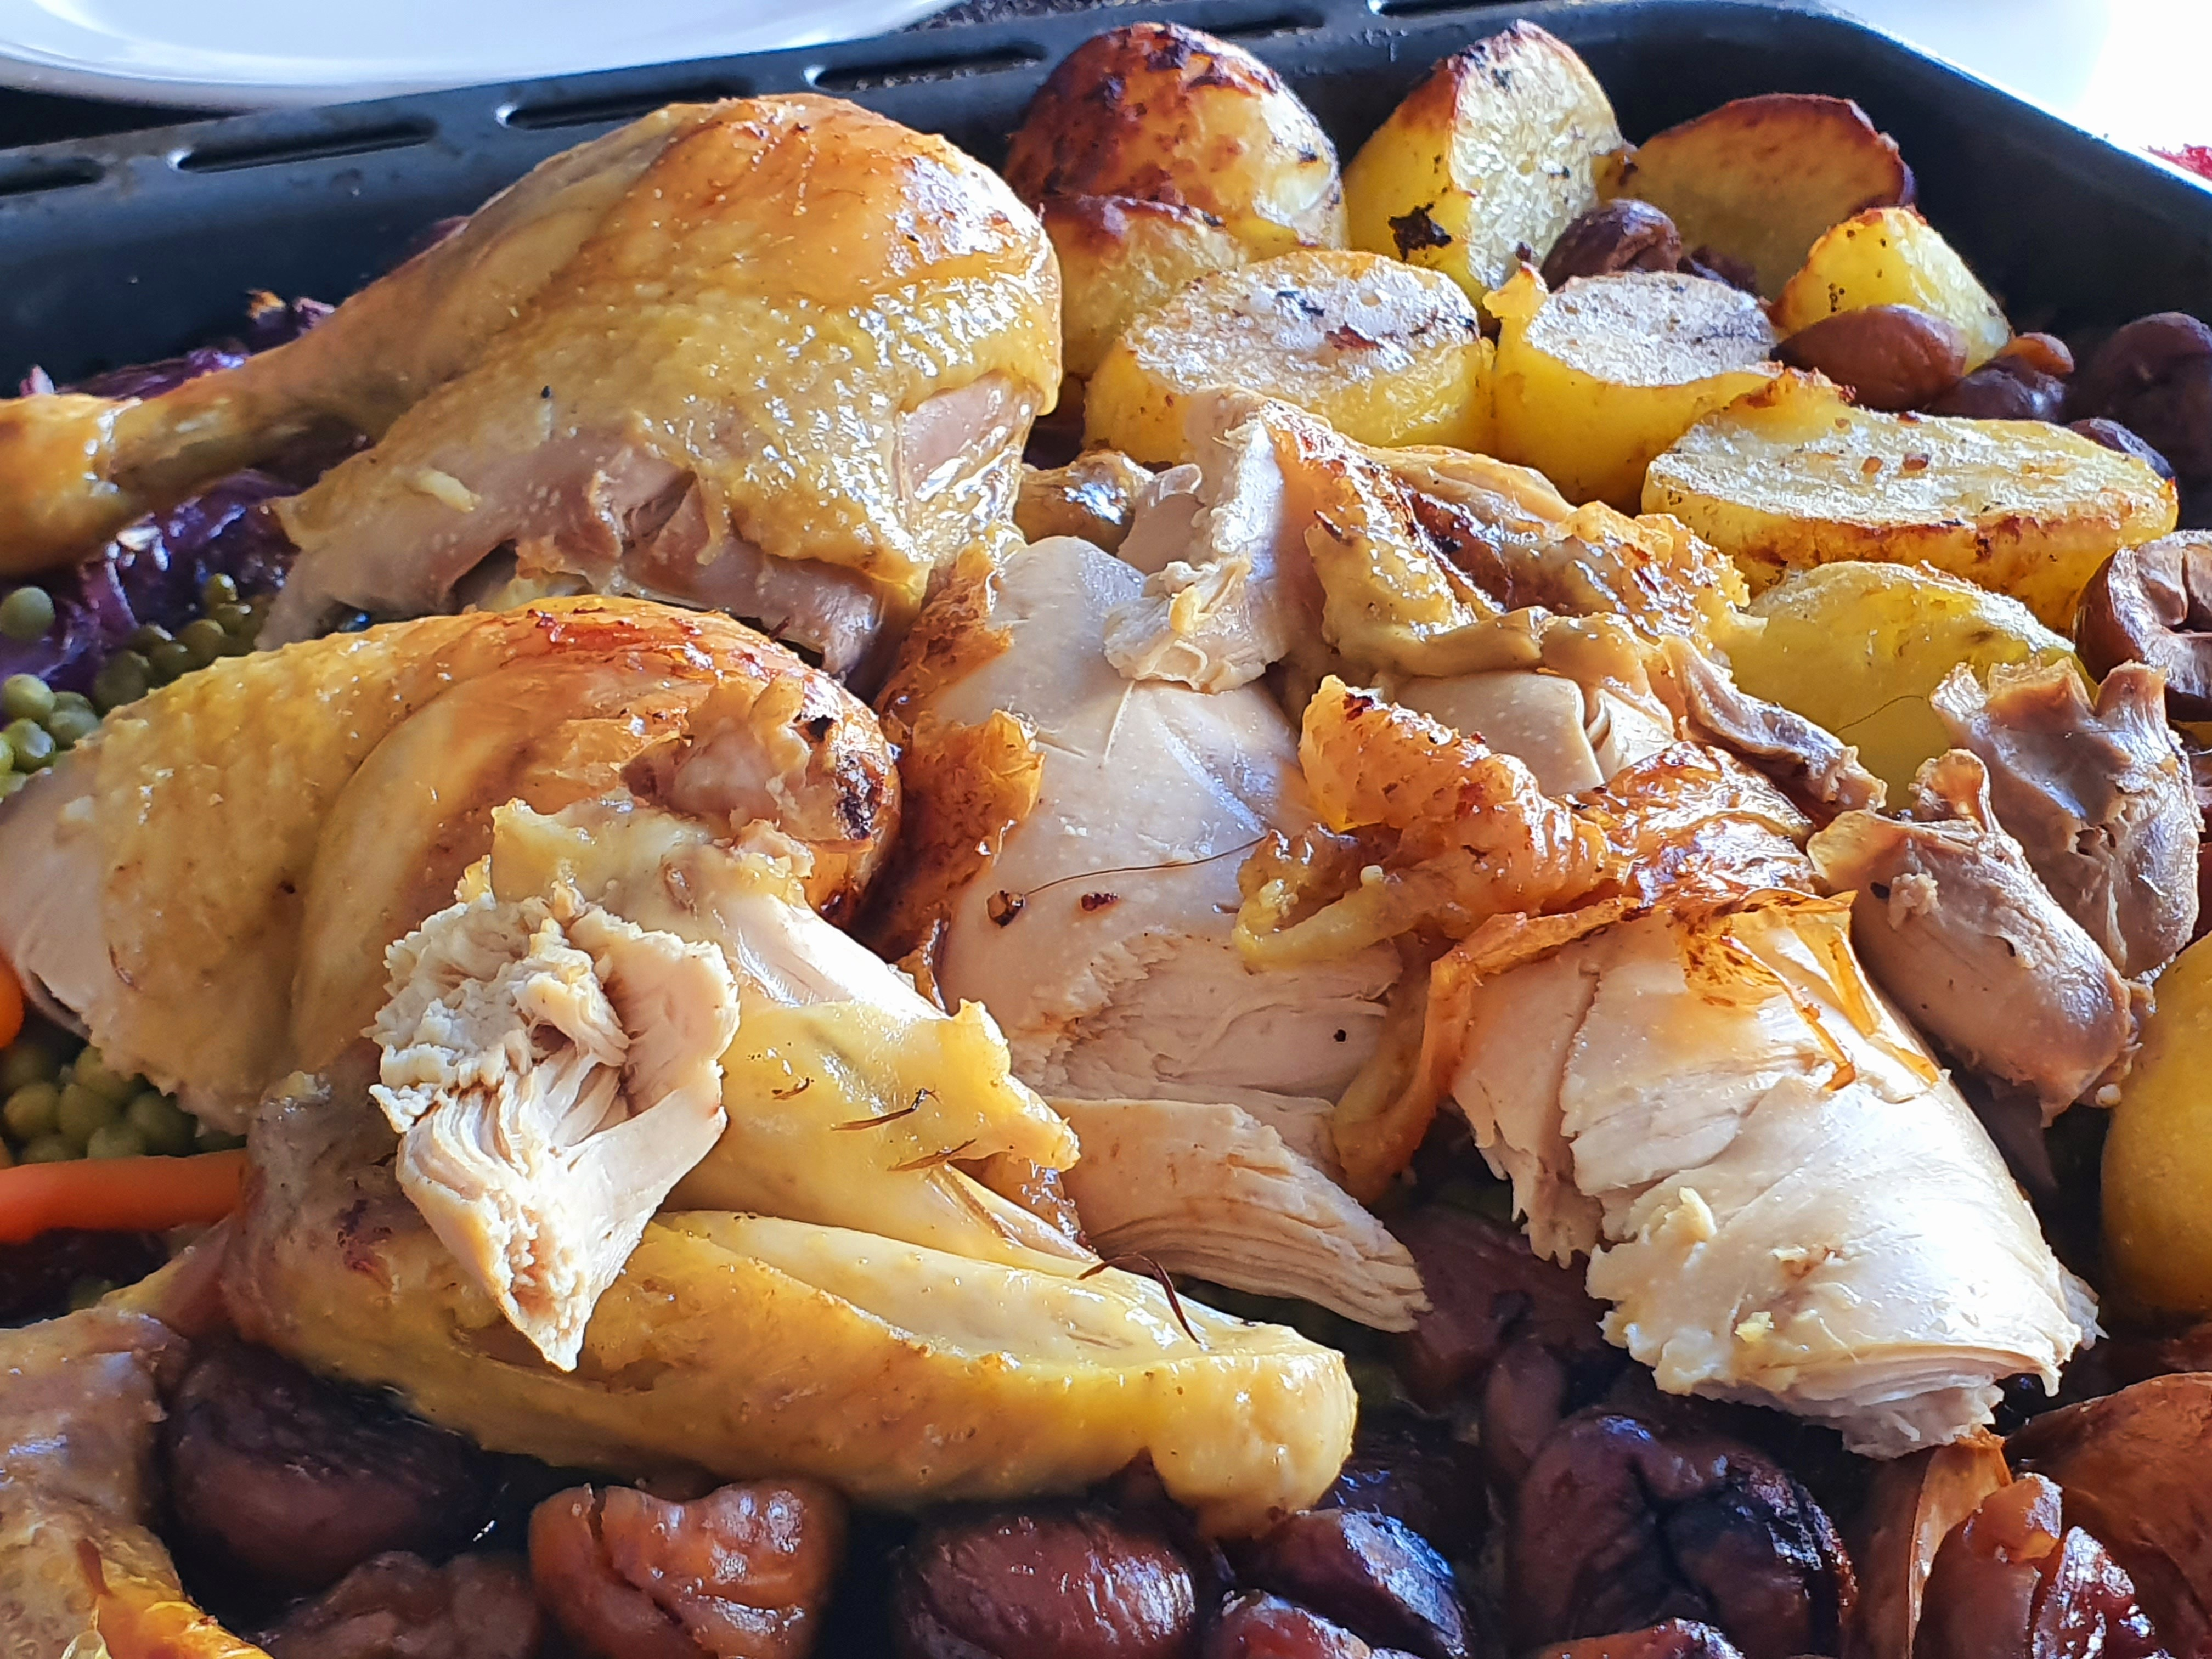 Roasted chicken with chestnuts, red onions and candied potatoes